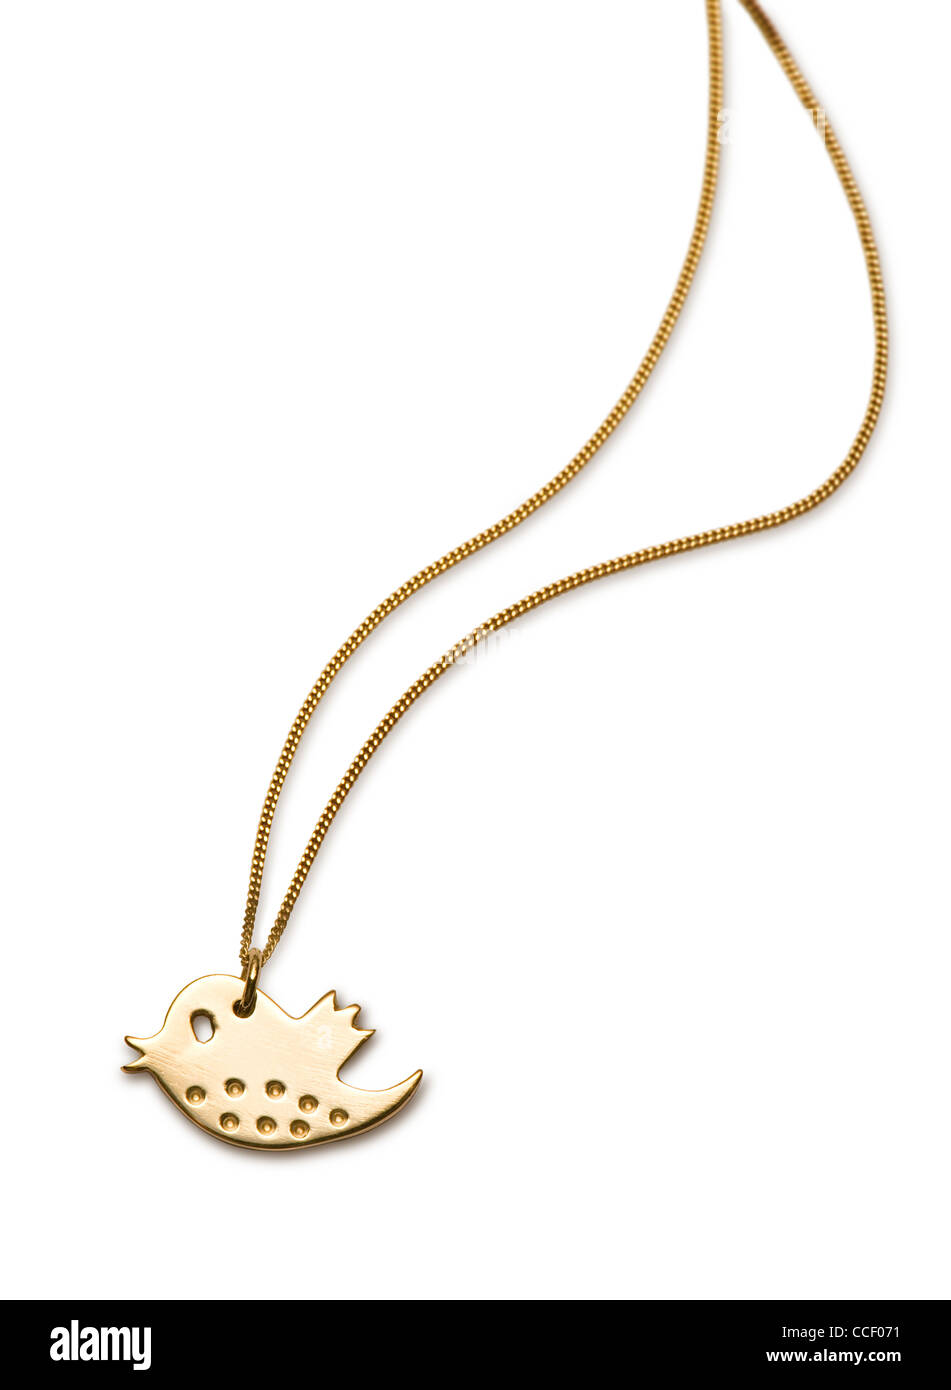 A gold twitter symbol pendant - Stock Image